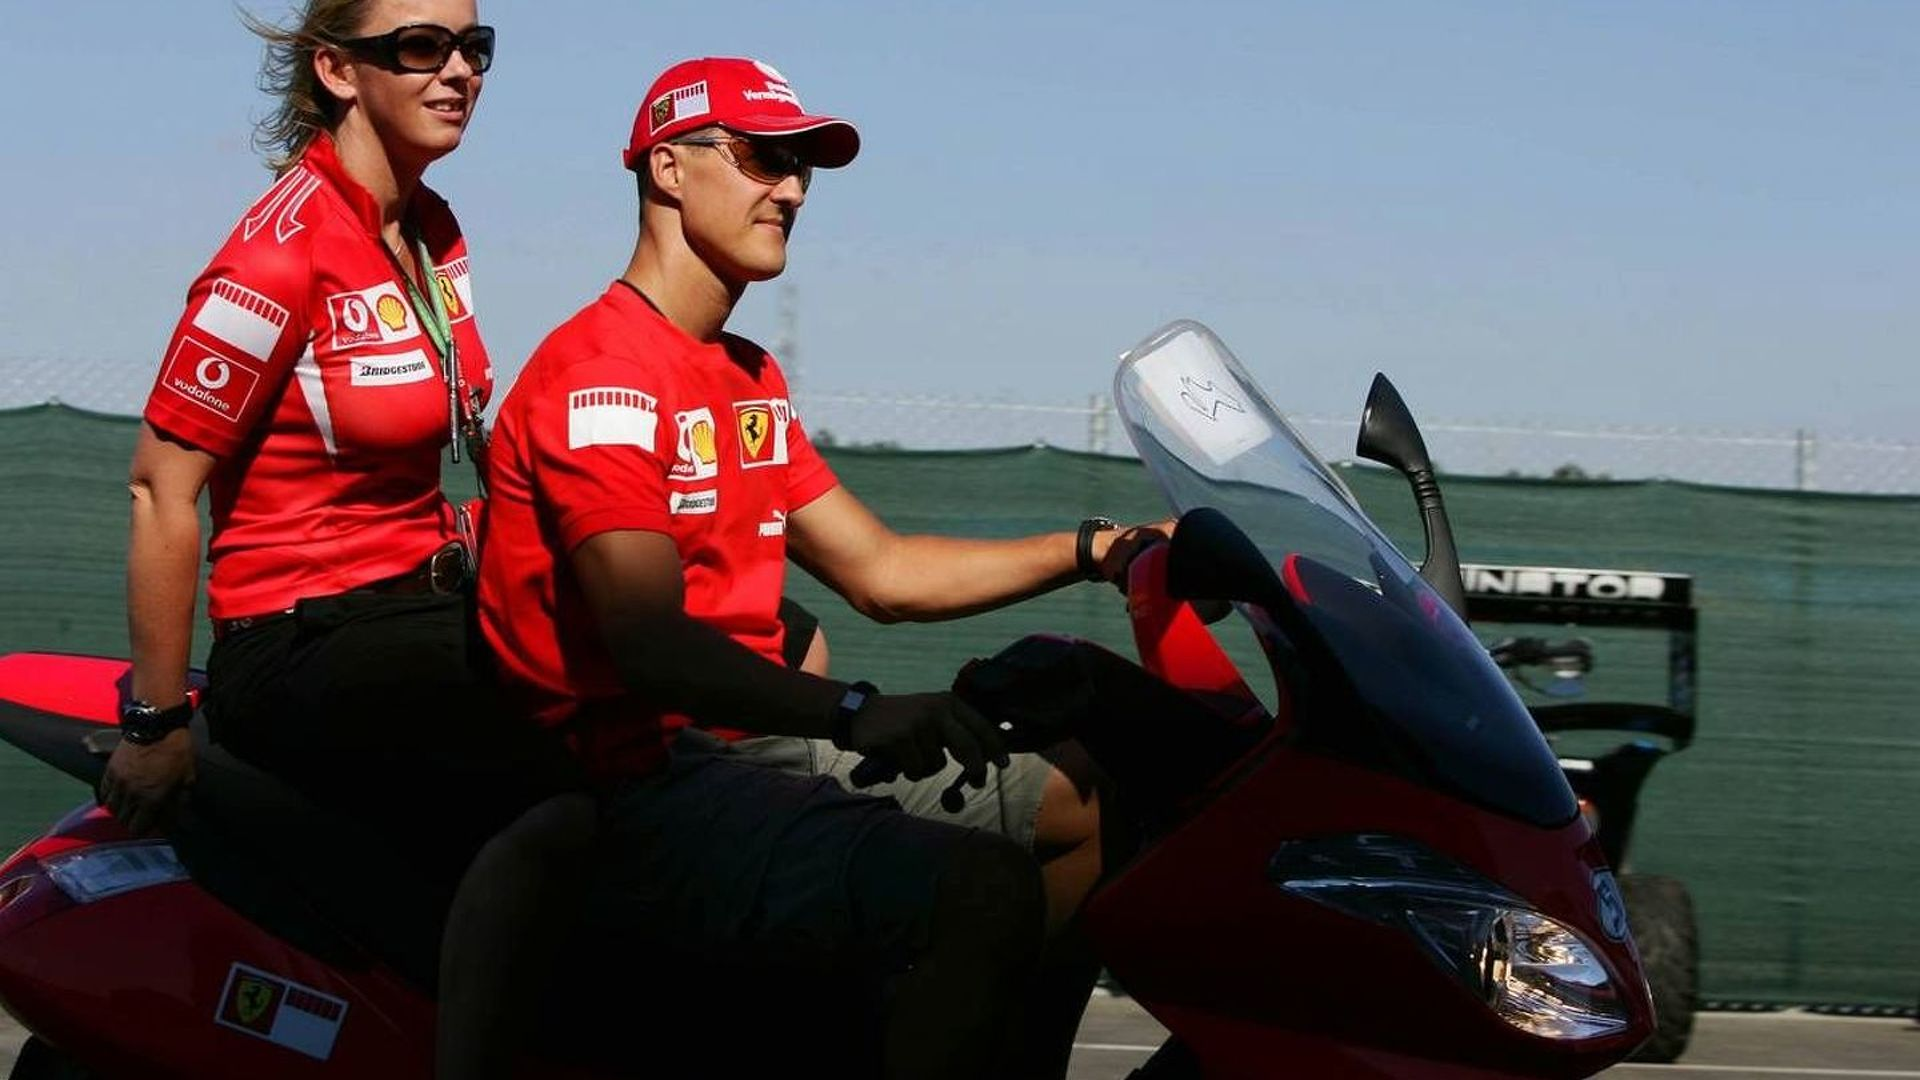 Manager guarding Schumacher's privacy